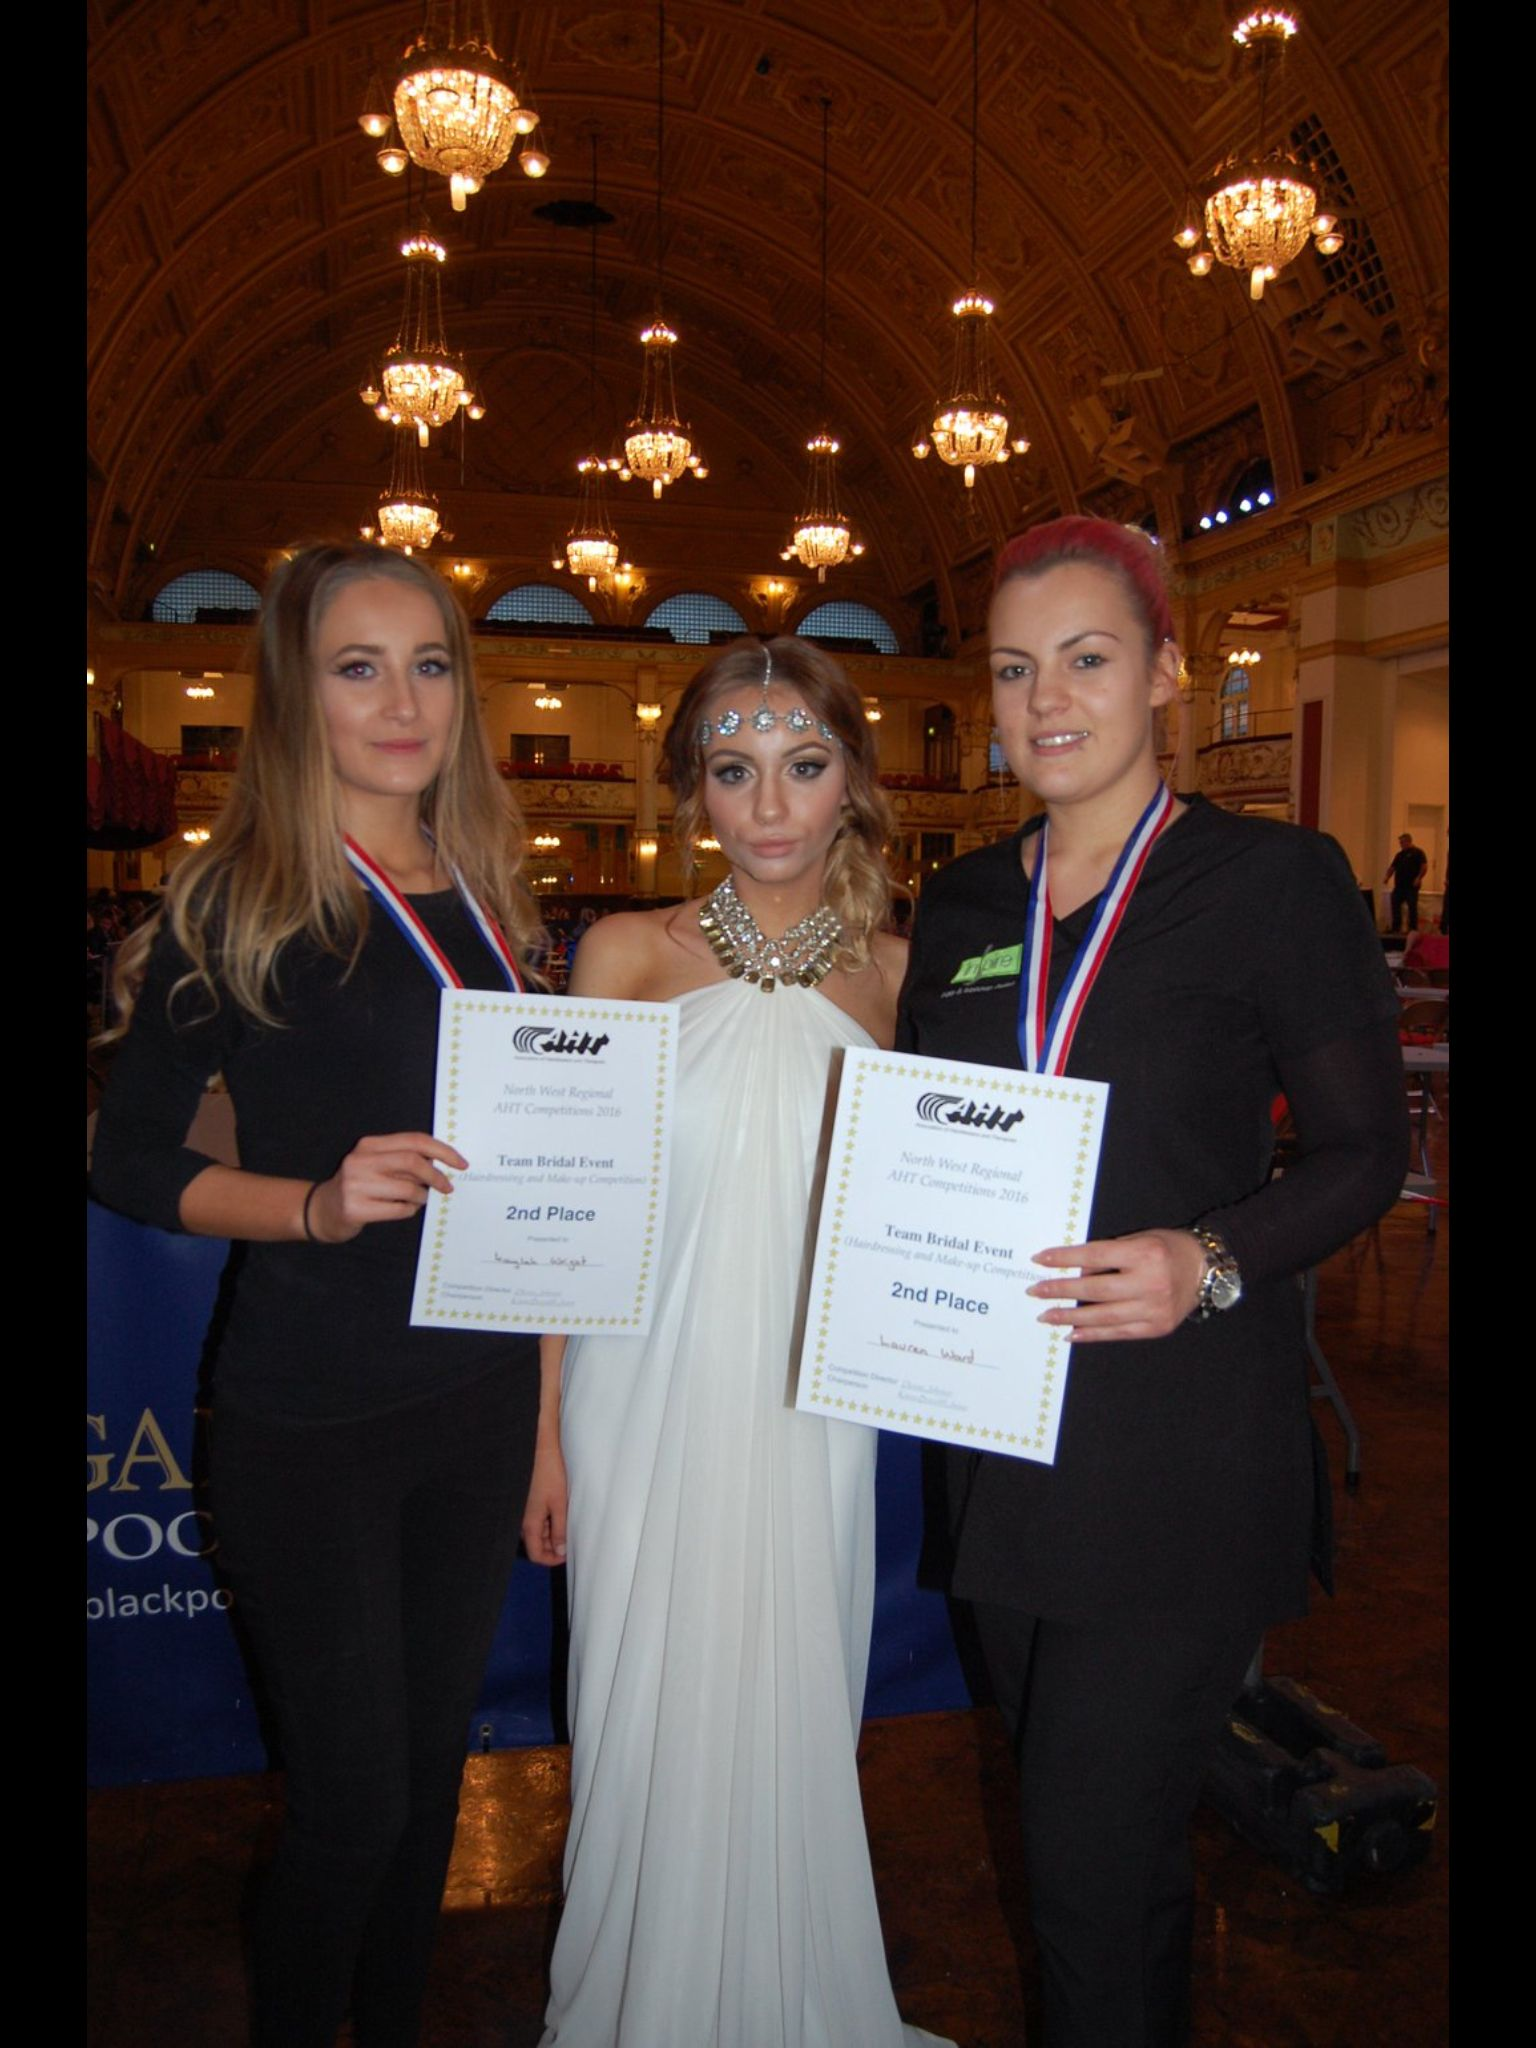 aht area heat competitions at blackpool winter gardens 2016 2nd